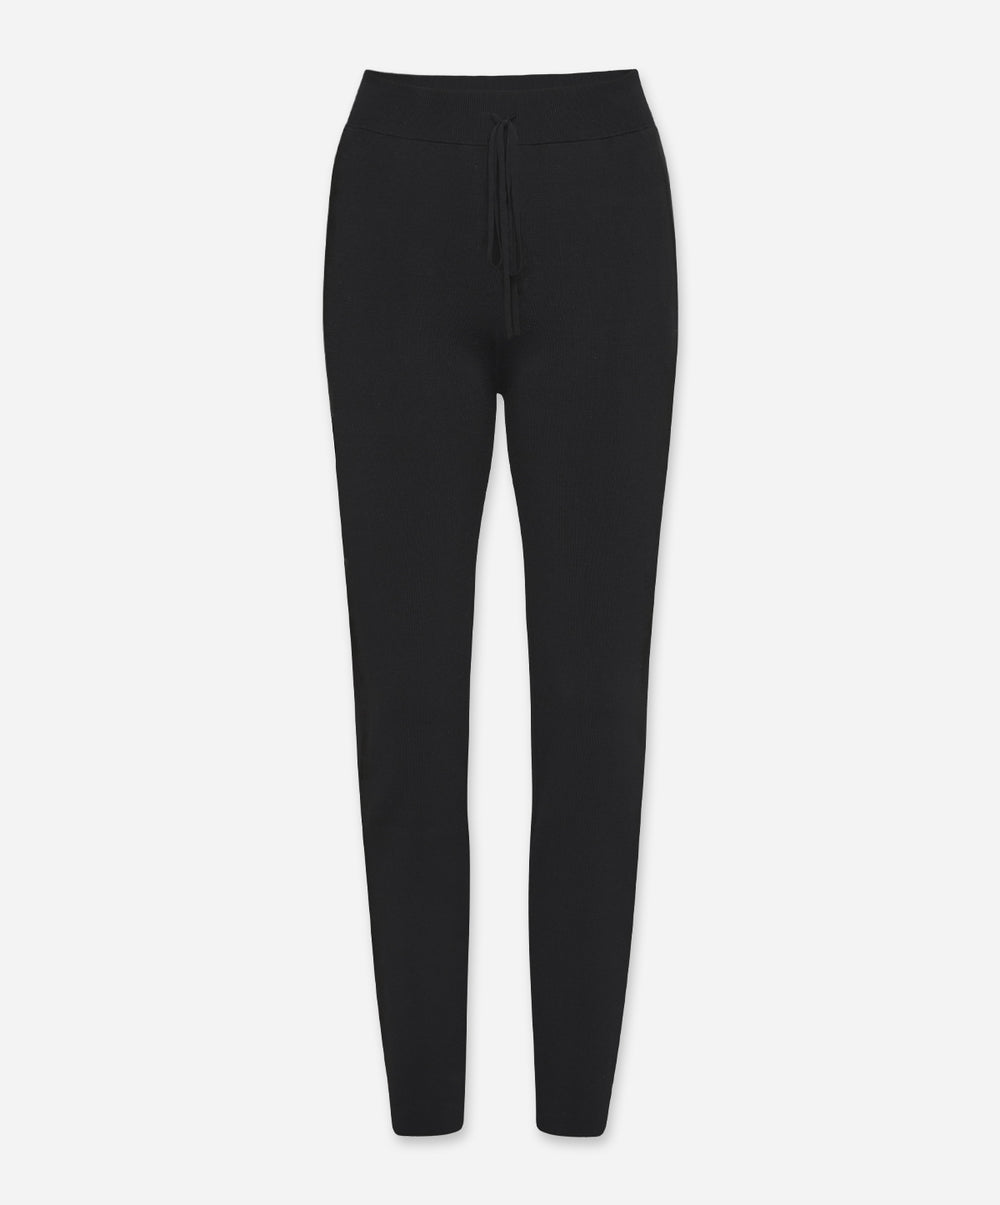 Adored Track Pant